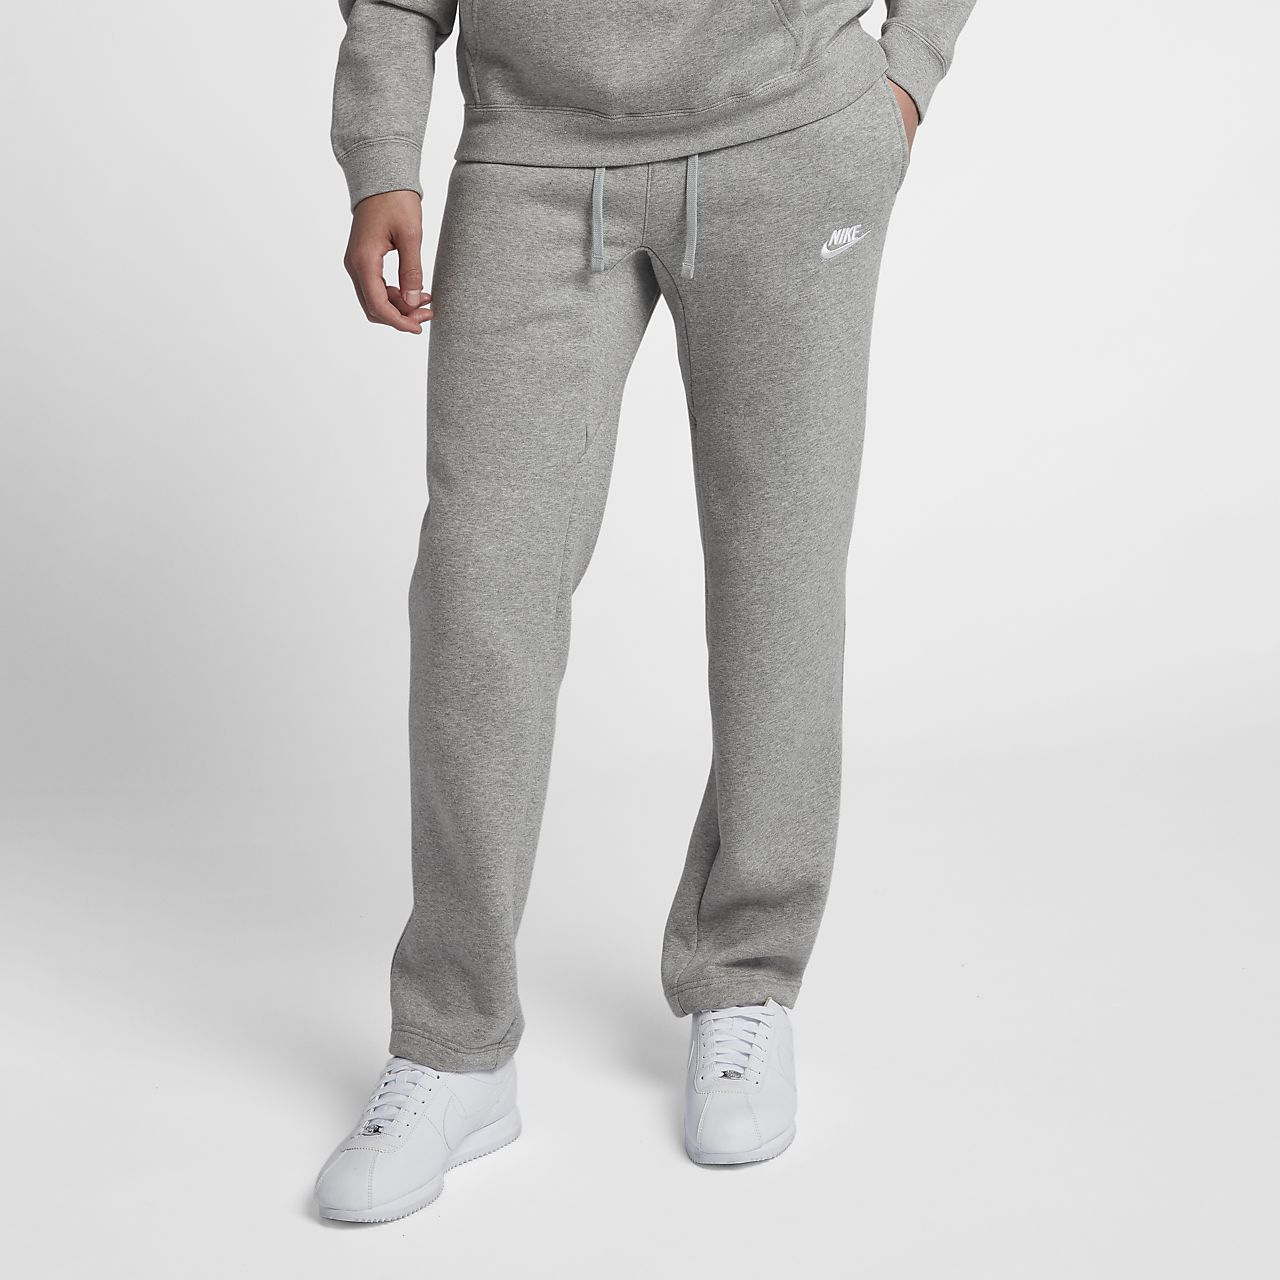 f22e9adaeb048 Nike Sportswear Club Fleece Men's Pants. Nike.com